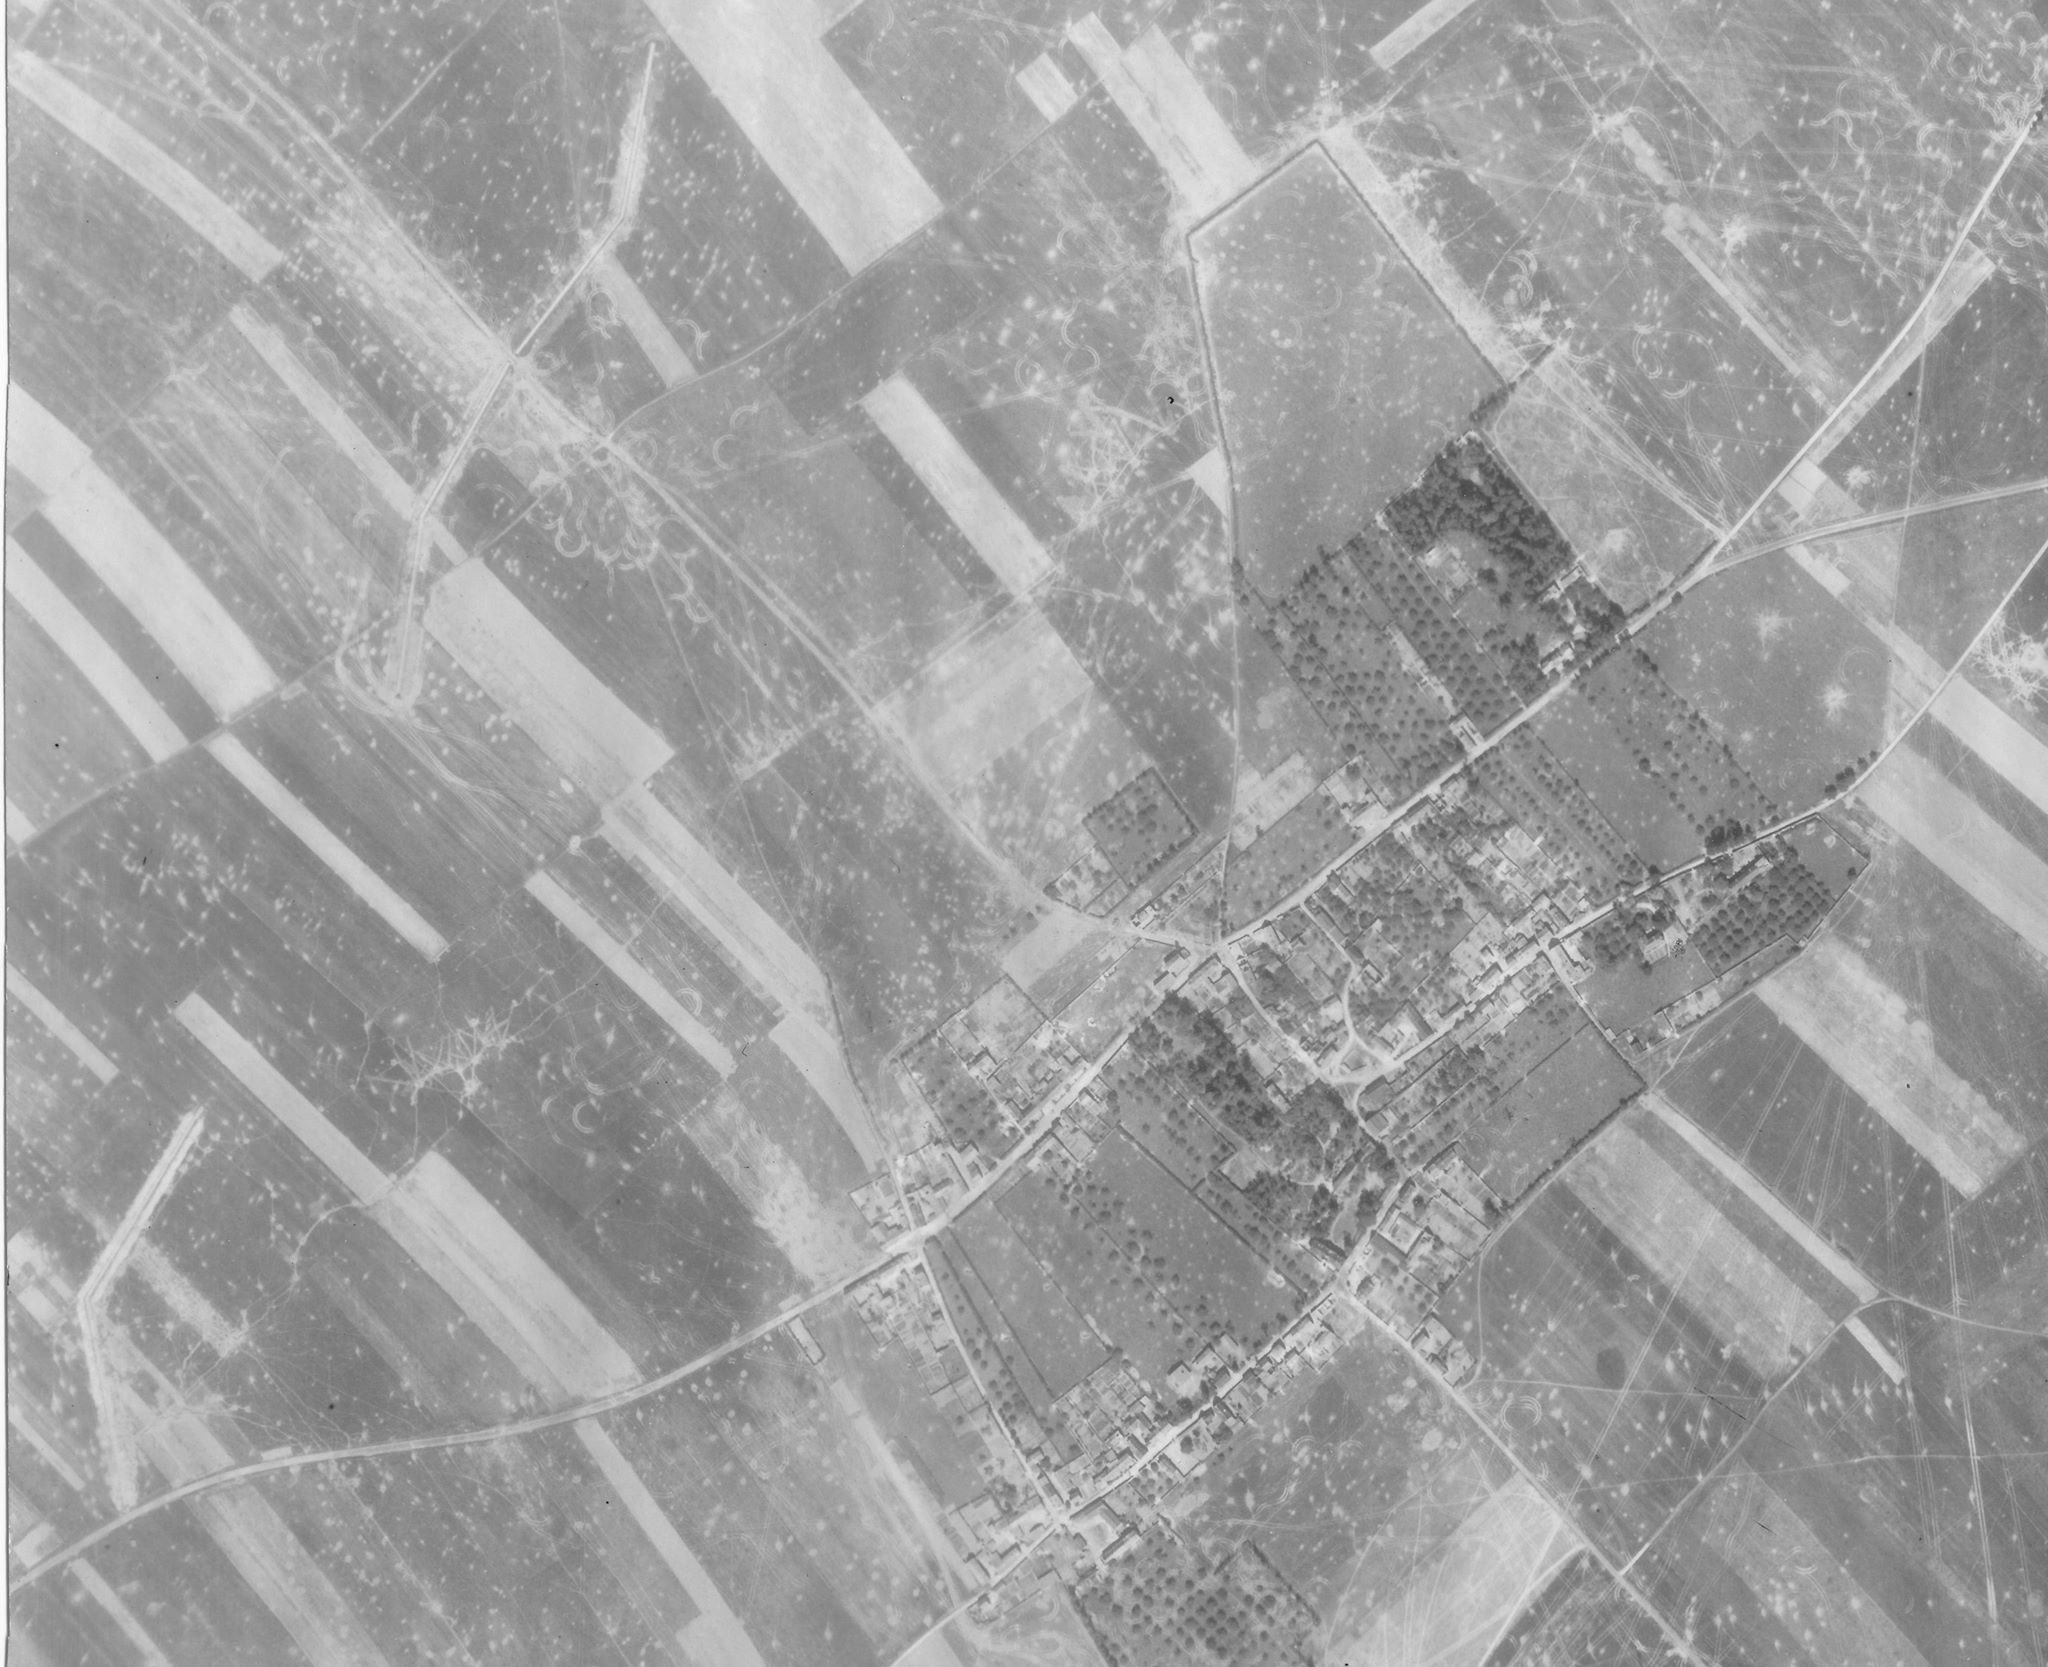 An aerial reconnaissance photo of Buron, taken on 24 June 1944, clearly showing the anti-tank ditches the Germans built for the village's defence. Tank tracks and cratering indicate the heavy fighting in the area (LCMSDS Air Photo Collection 307/4087).